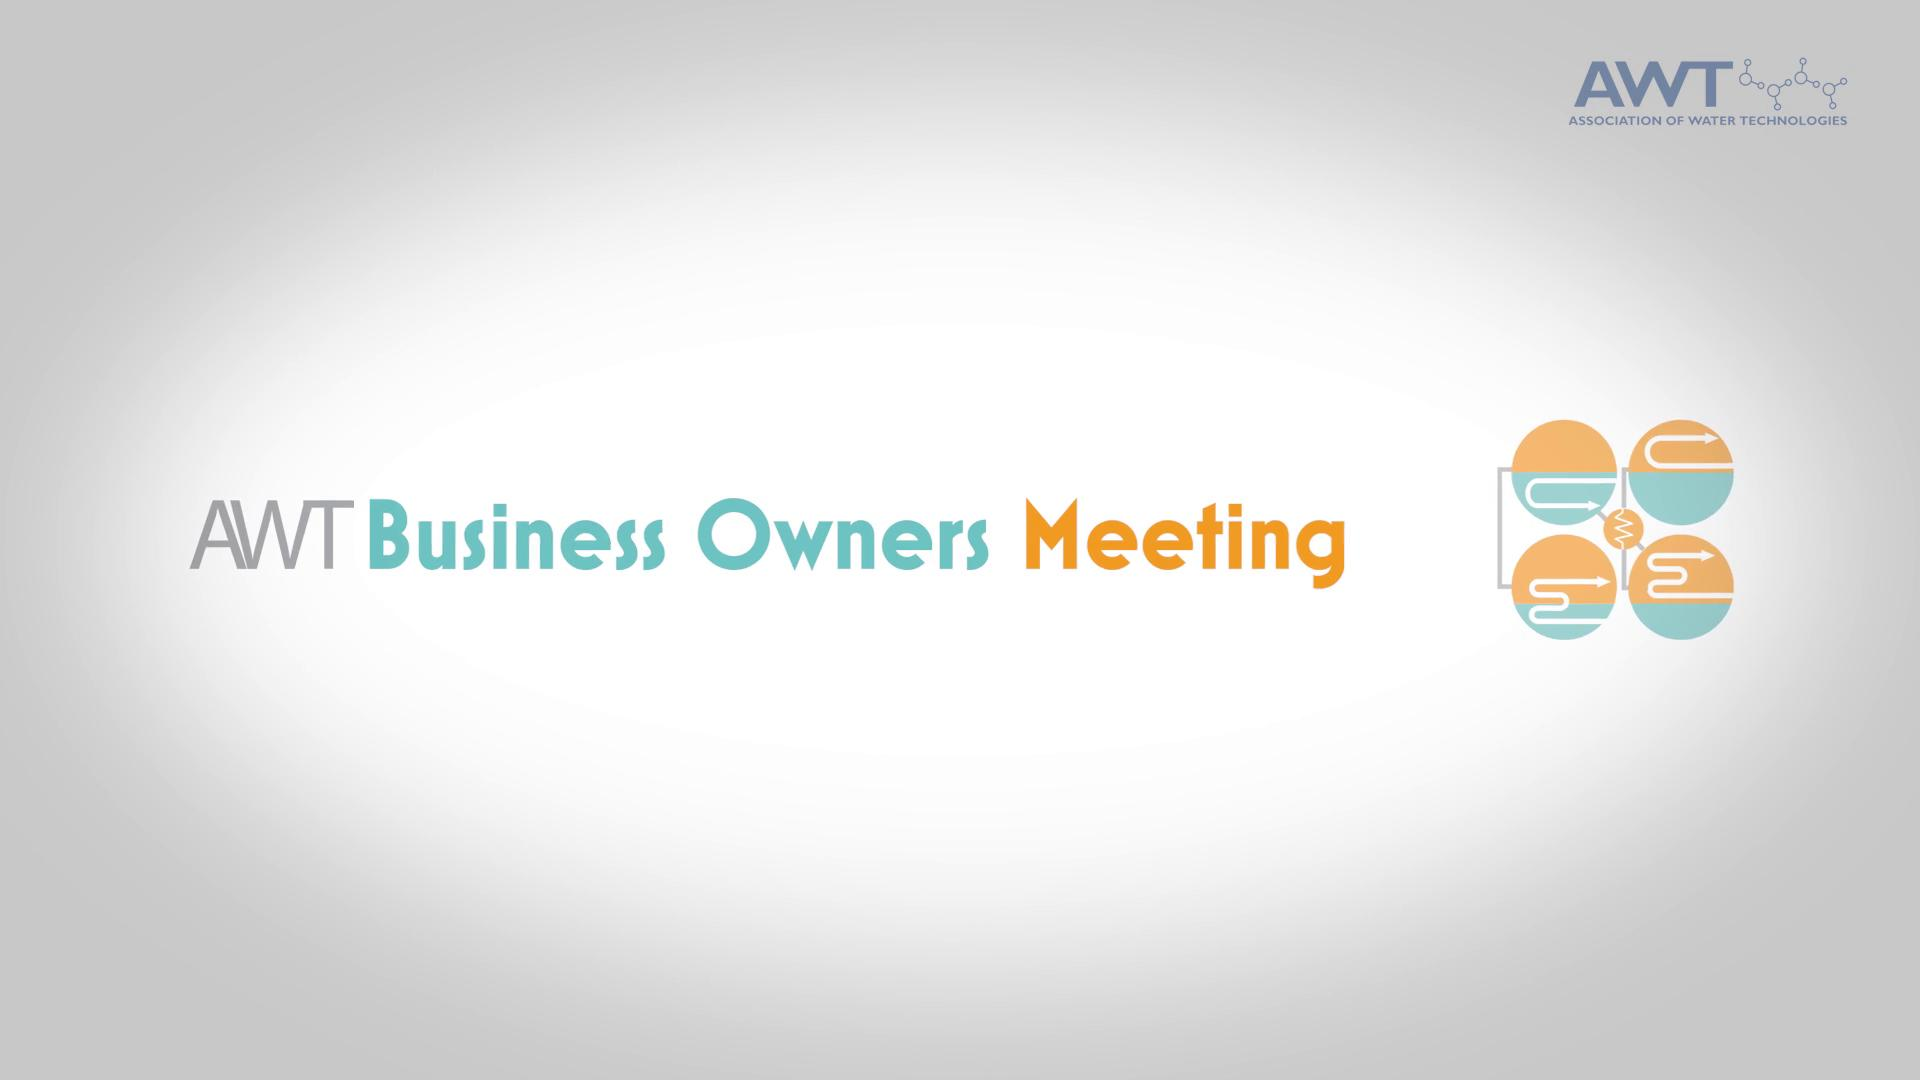 AWT_2020_Business_Owners_Meeting_Promo